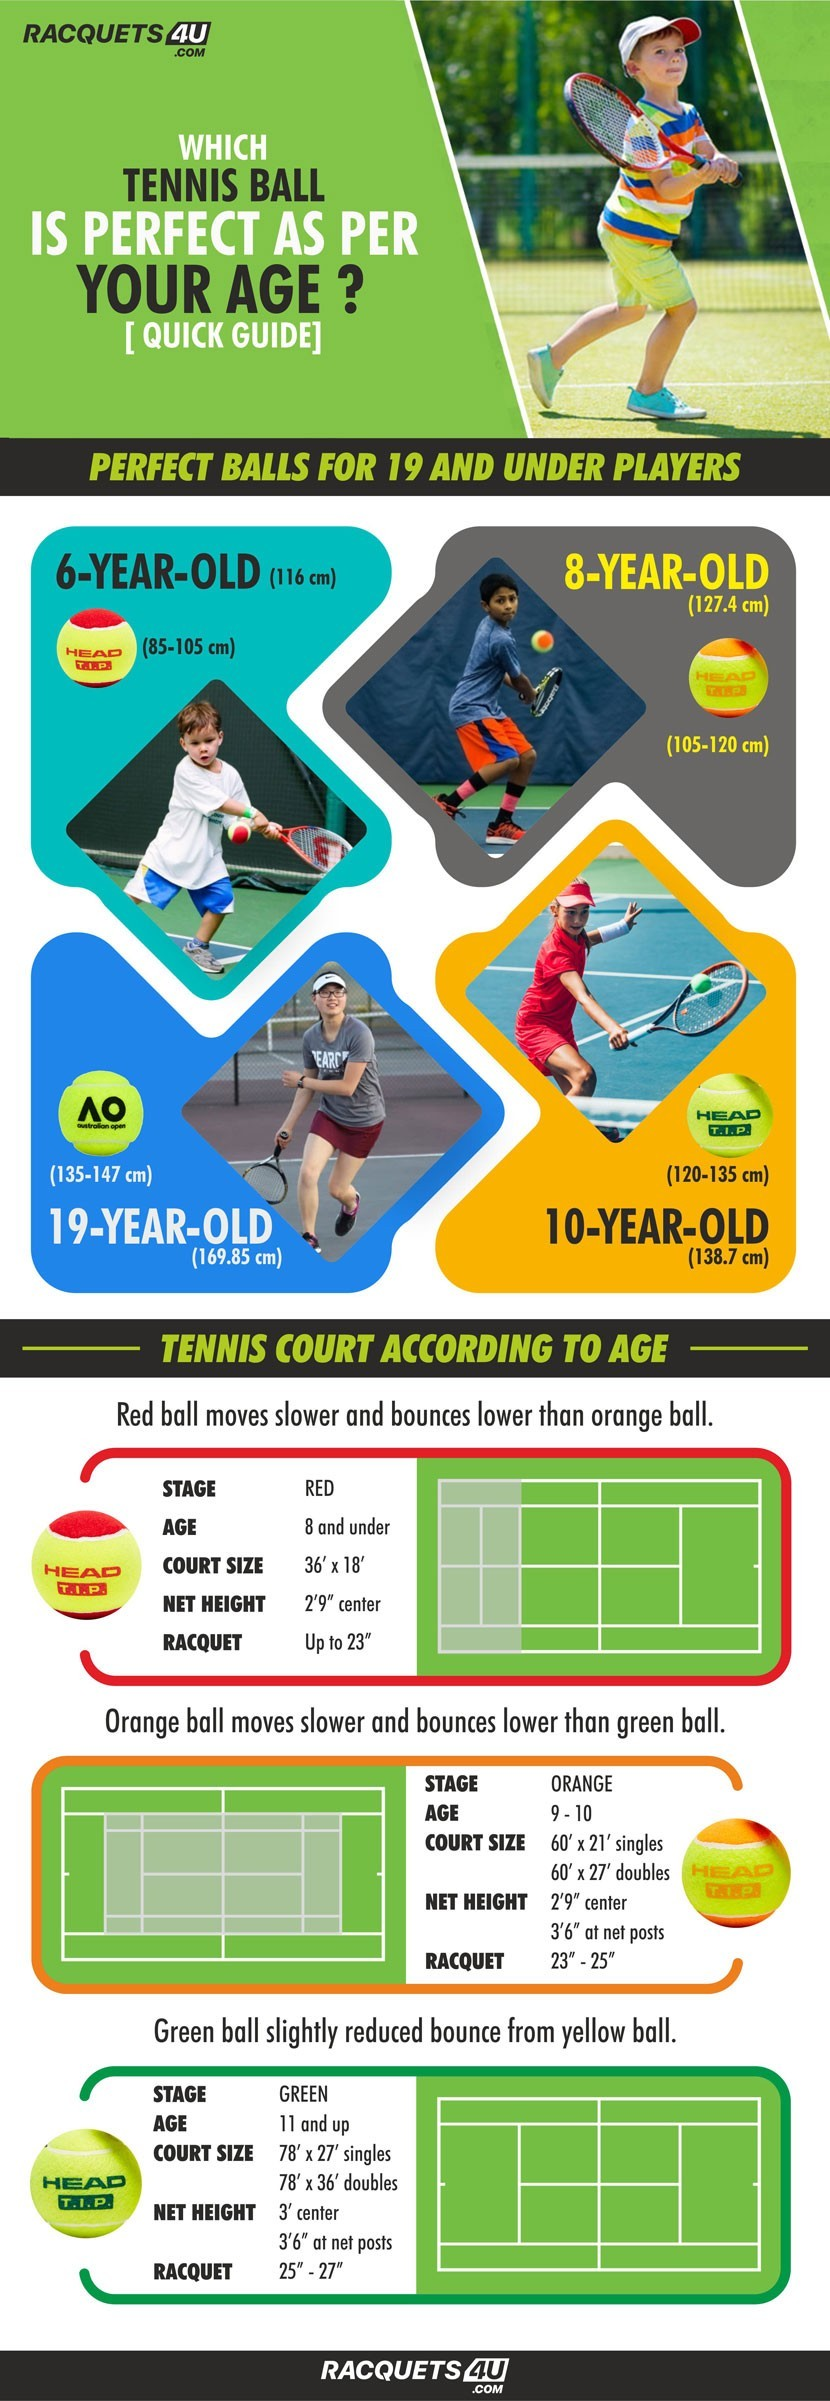 Which Tennis Ball is Perfect as Per Your Age? [Quick Guide]